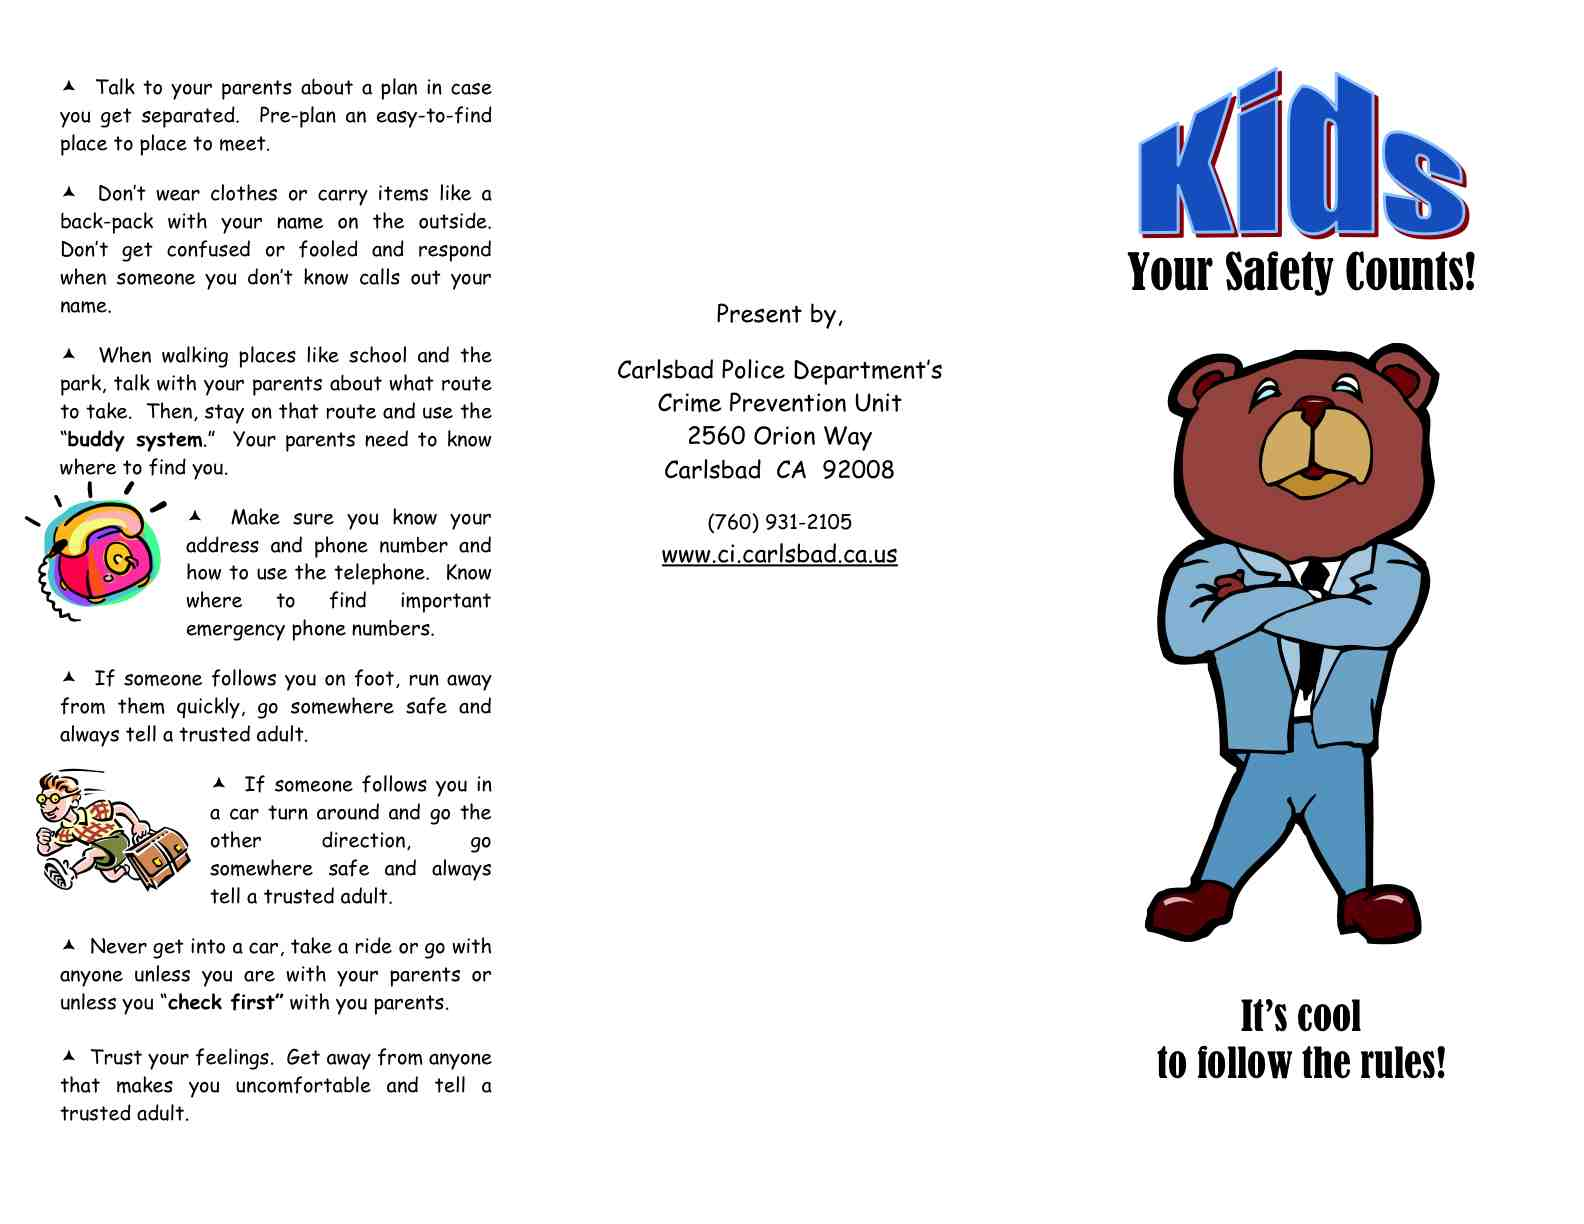 Carlsbad Police Department Safety Tips for Children2010.2